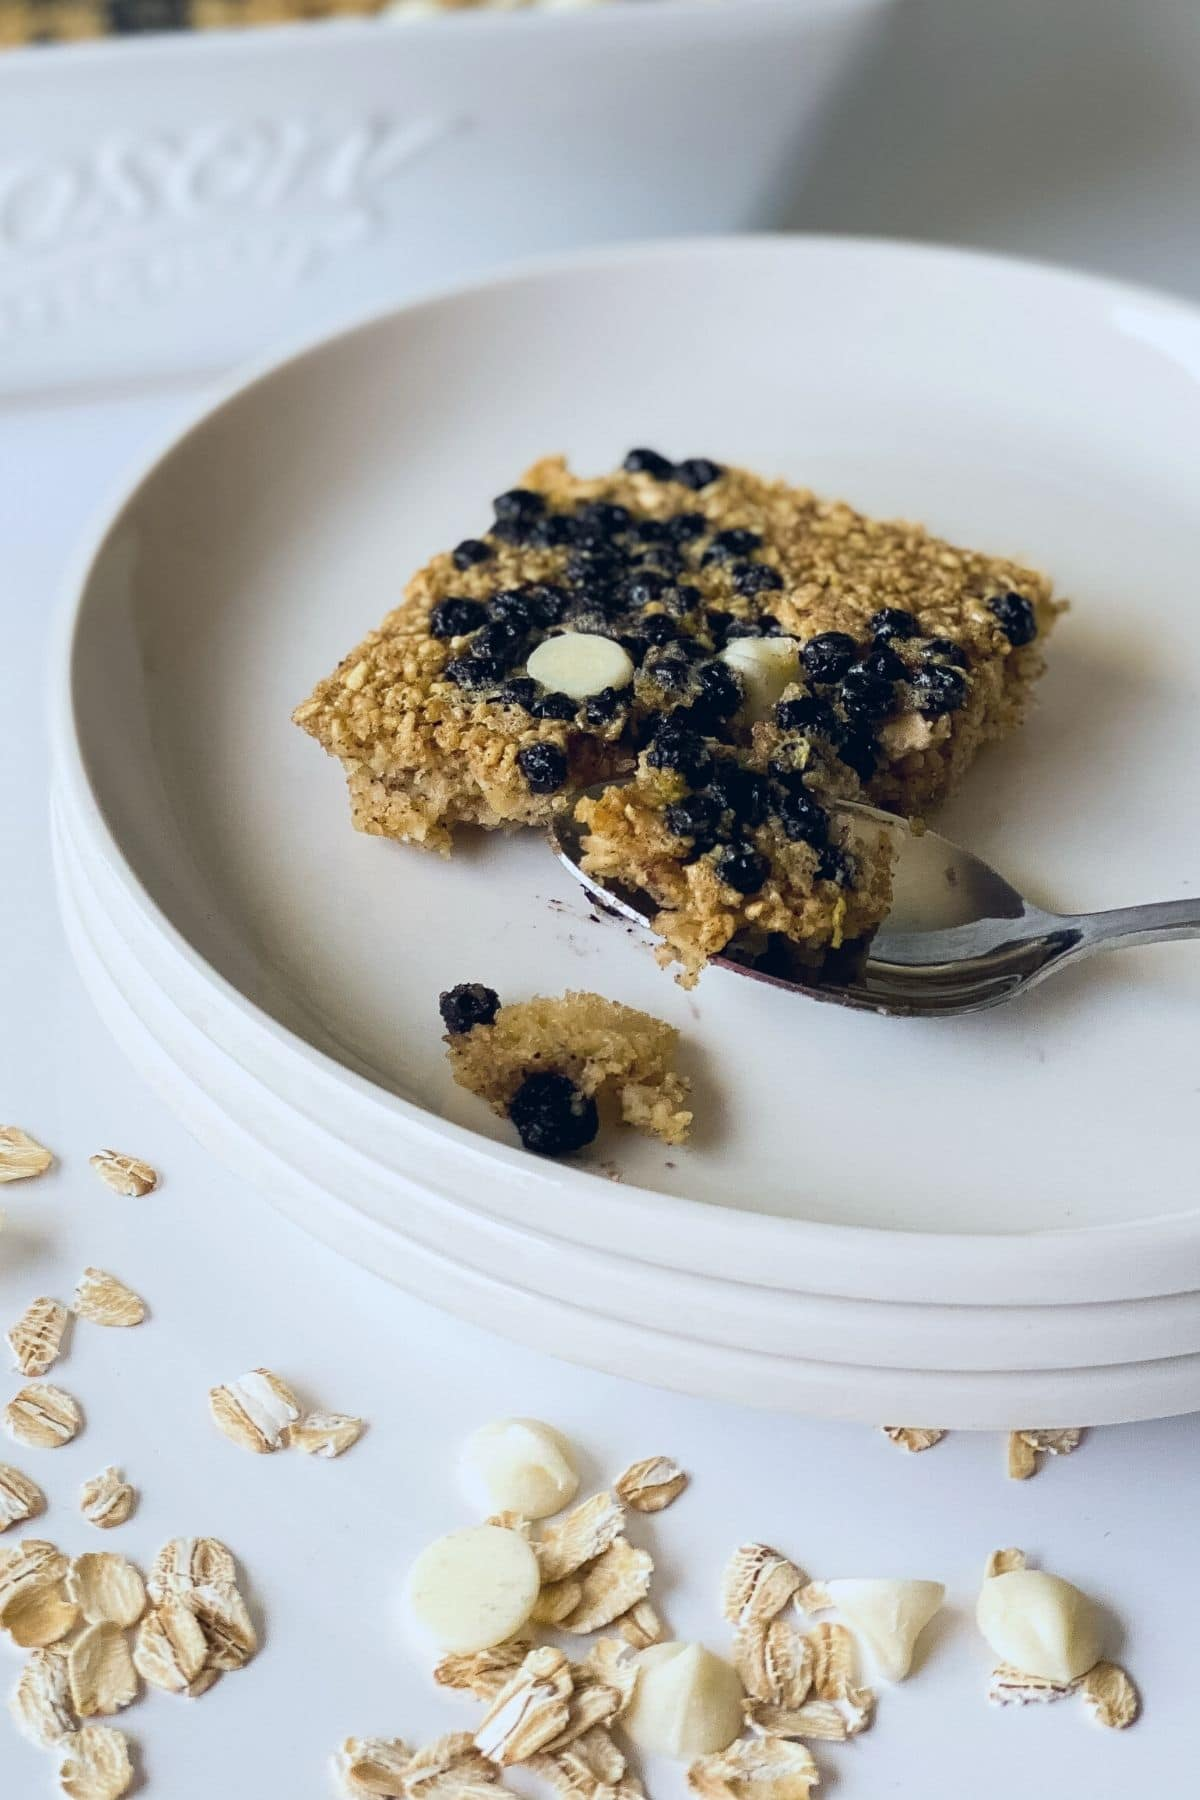 White plate with blueberry oat bar